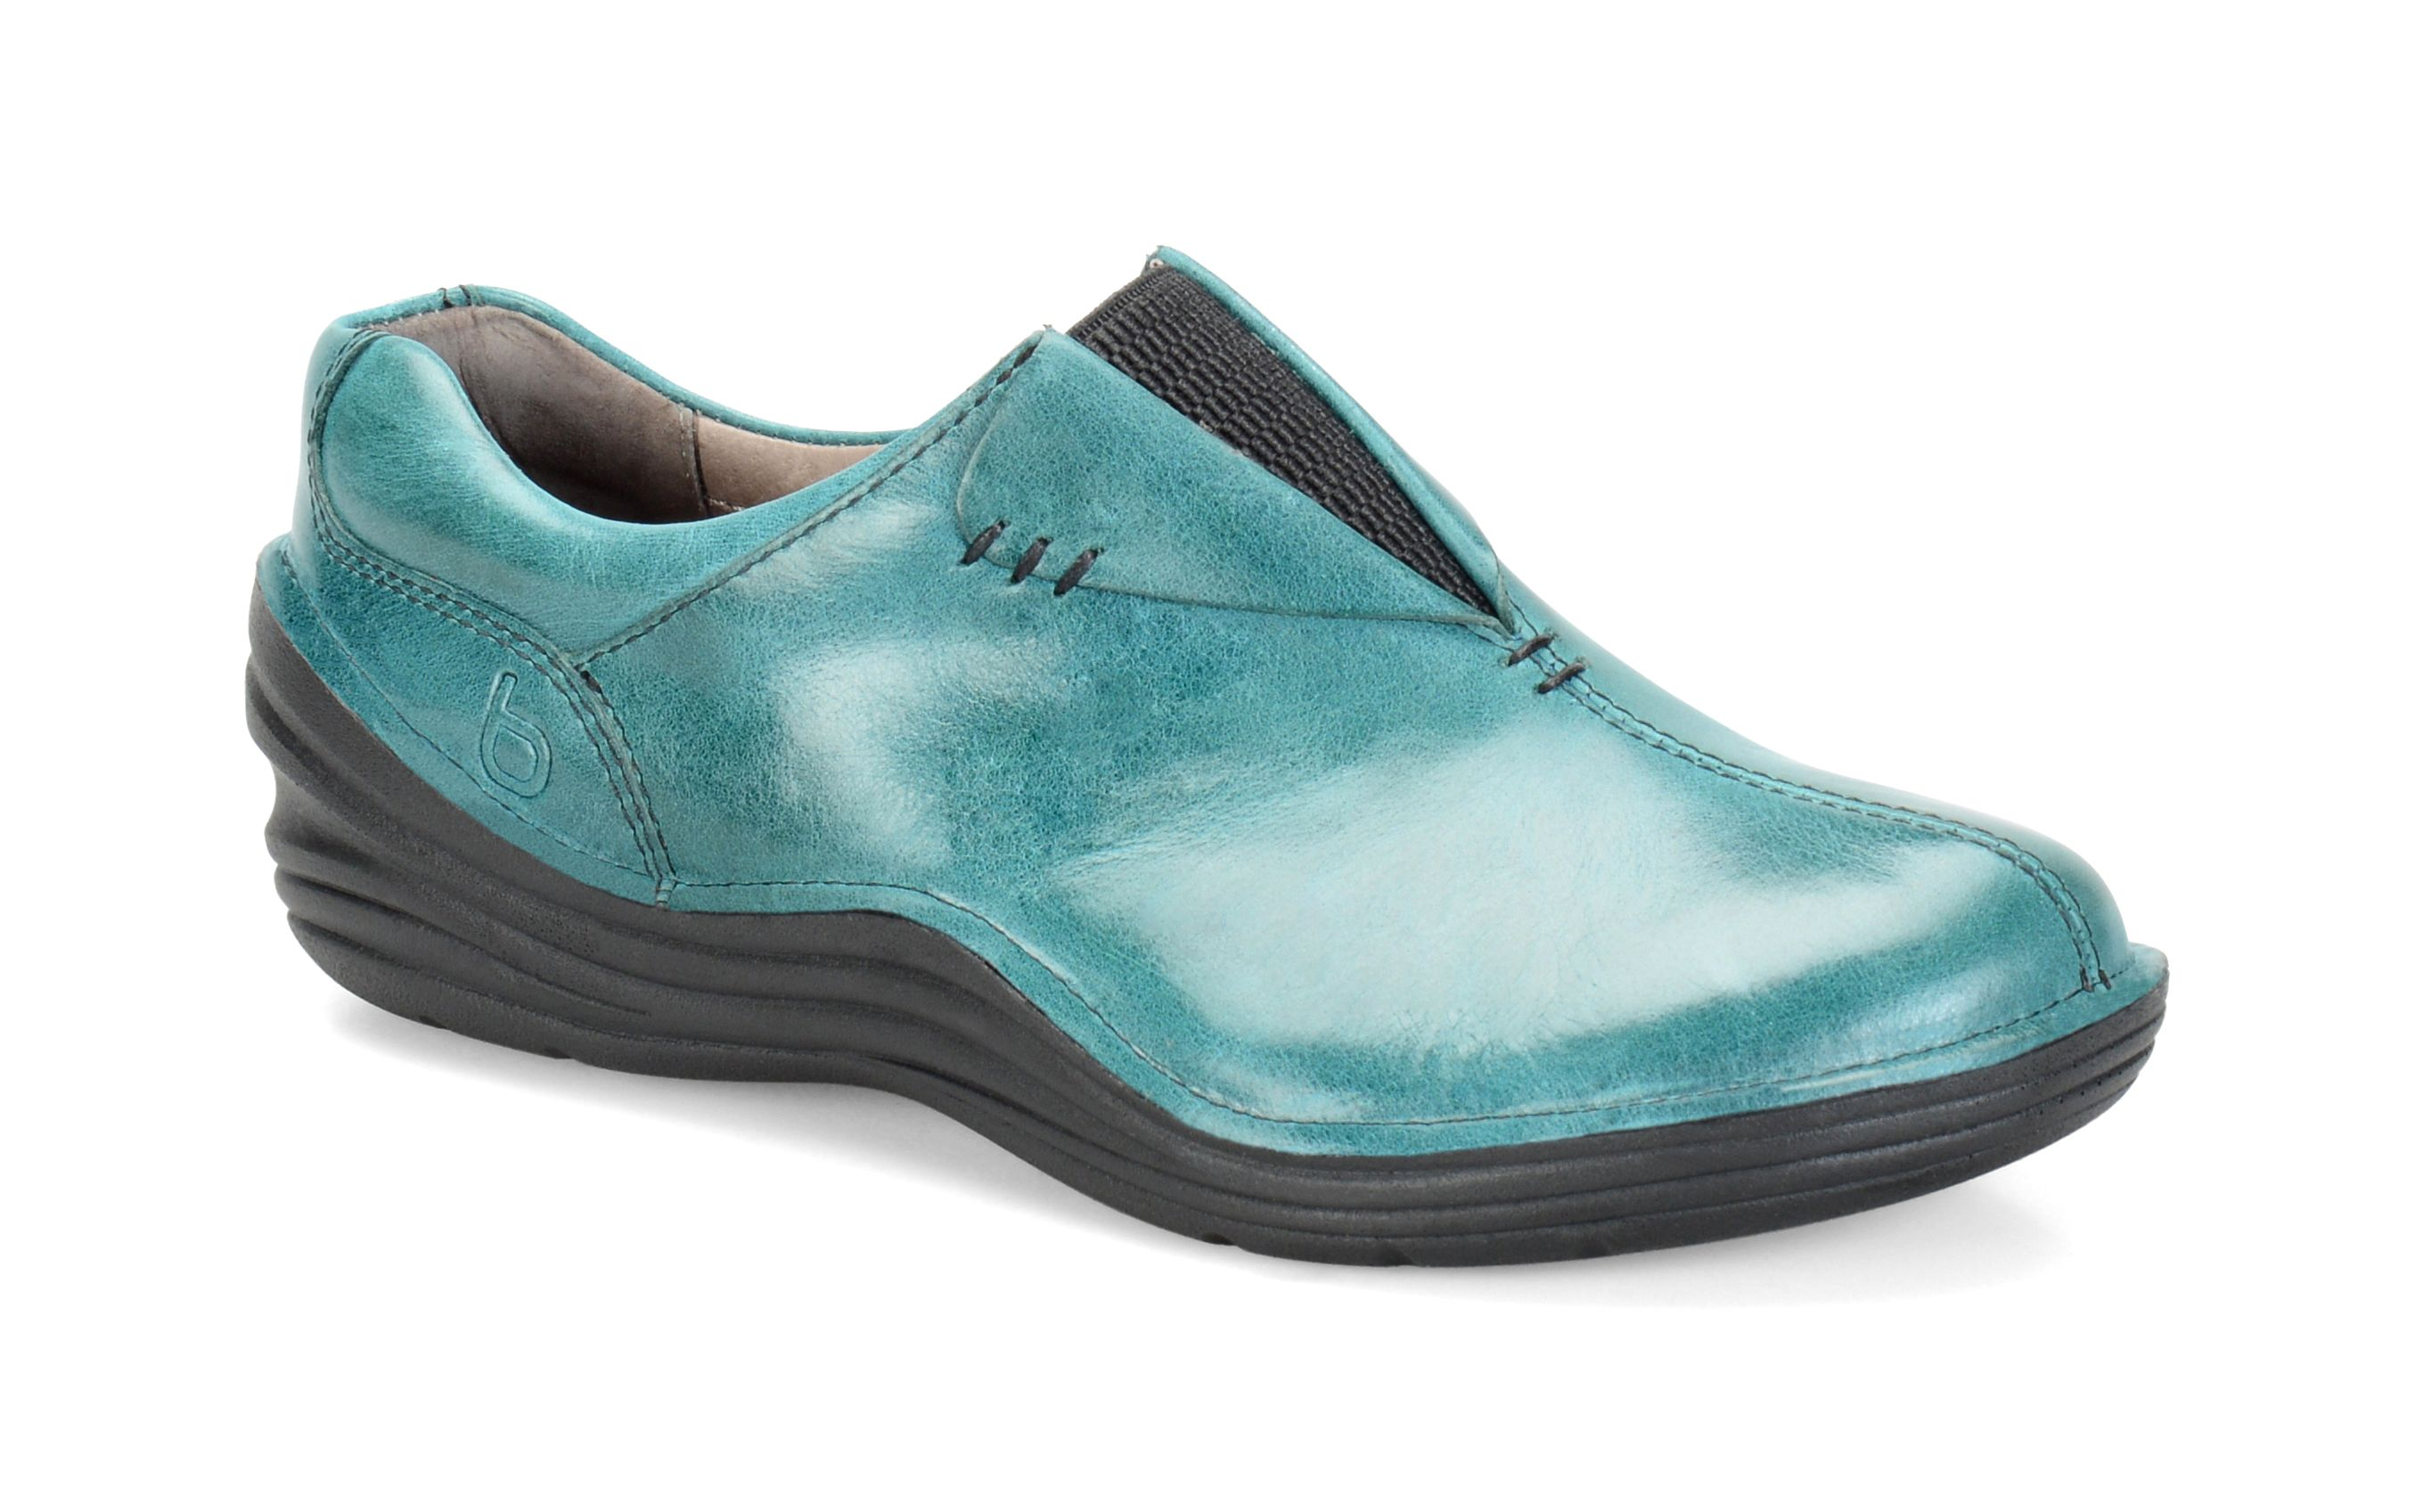 Bionica Veridas Teal | Leather slip on shoes, Stylish